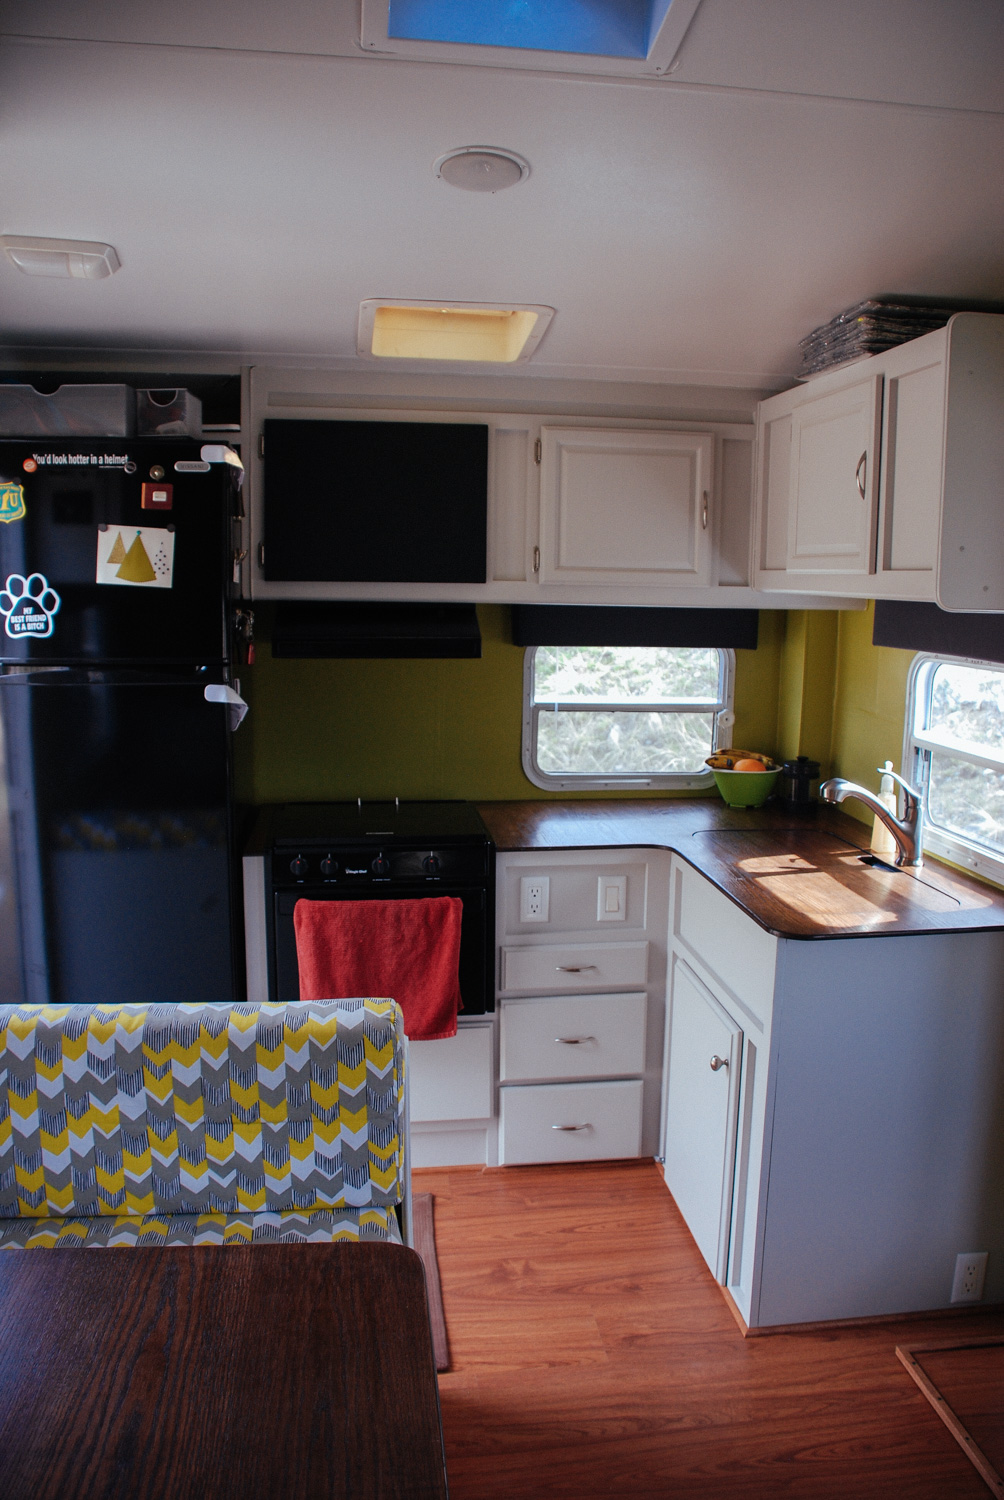 This is what our finished kitchen looked like when we first hit the road.